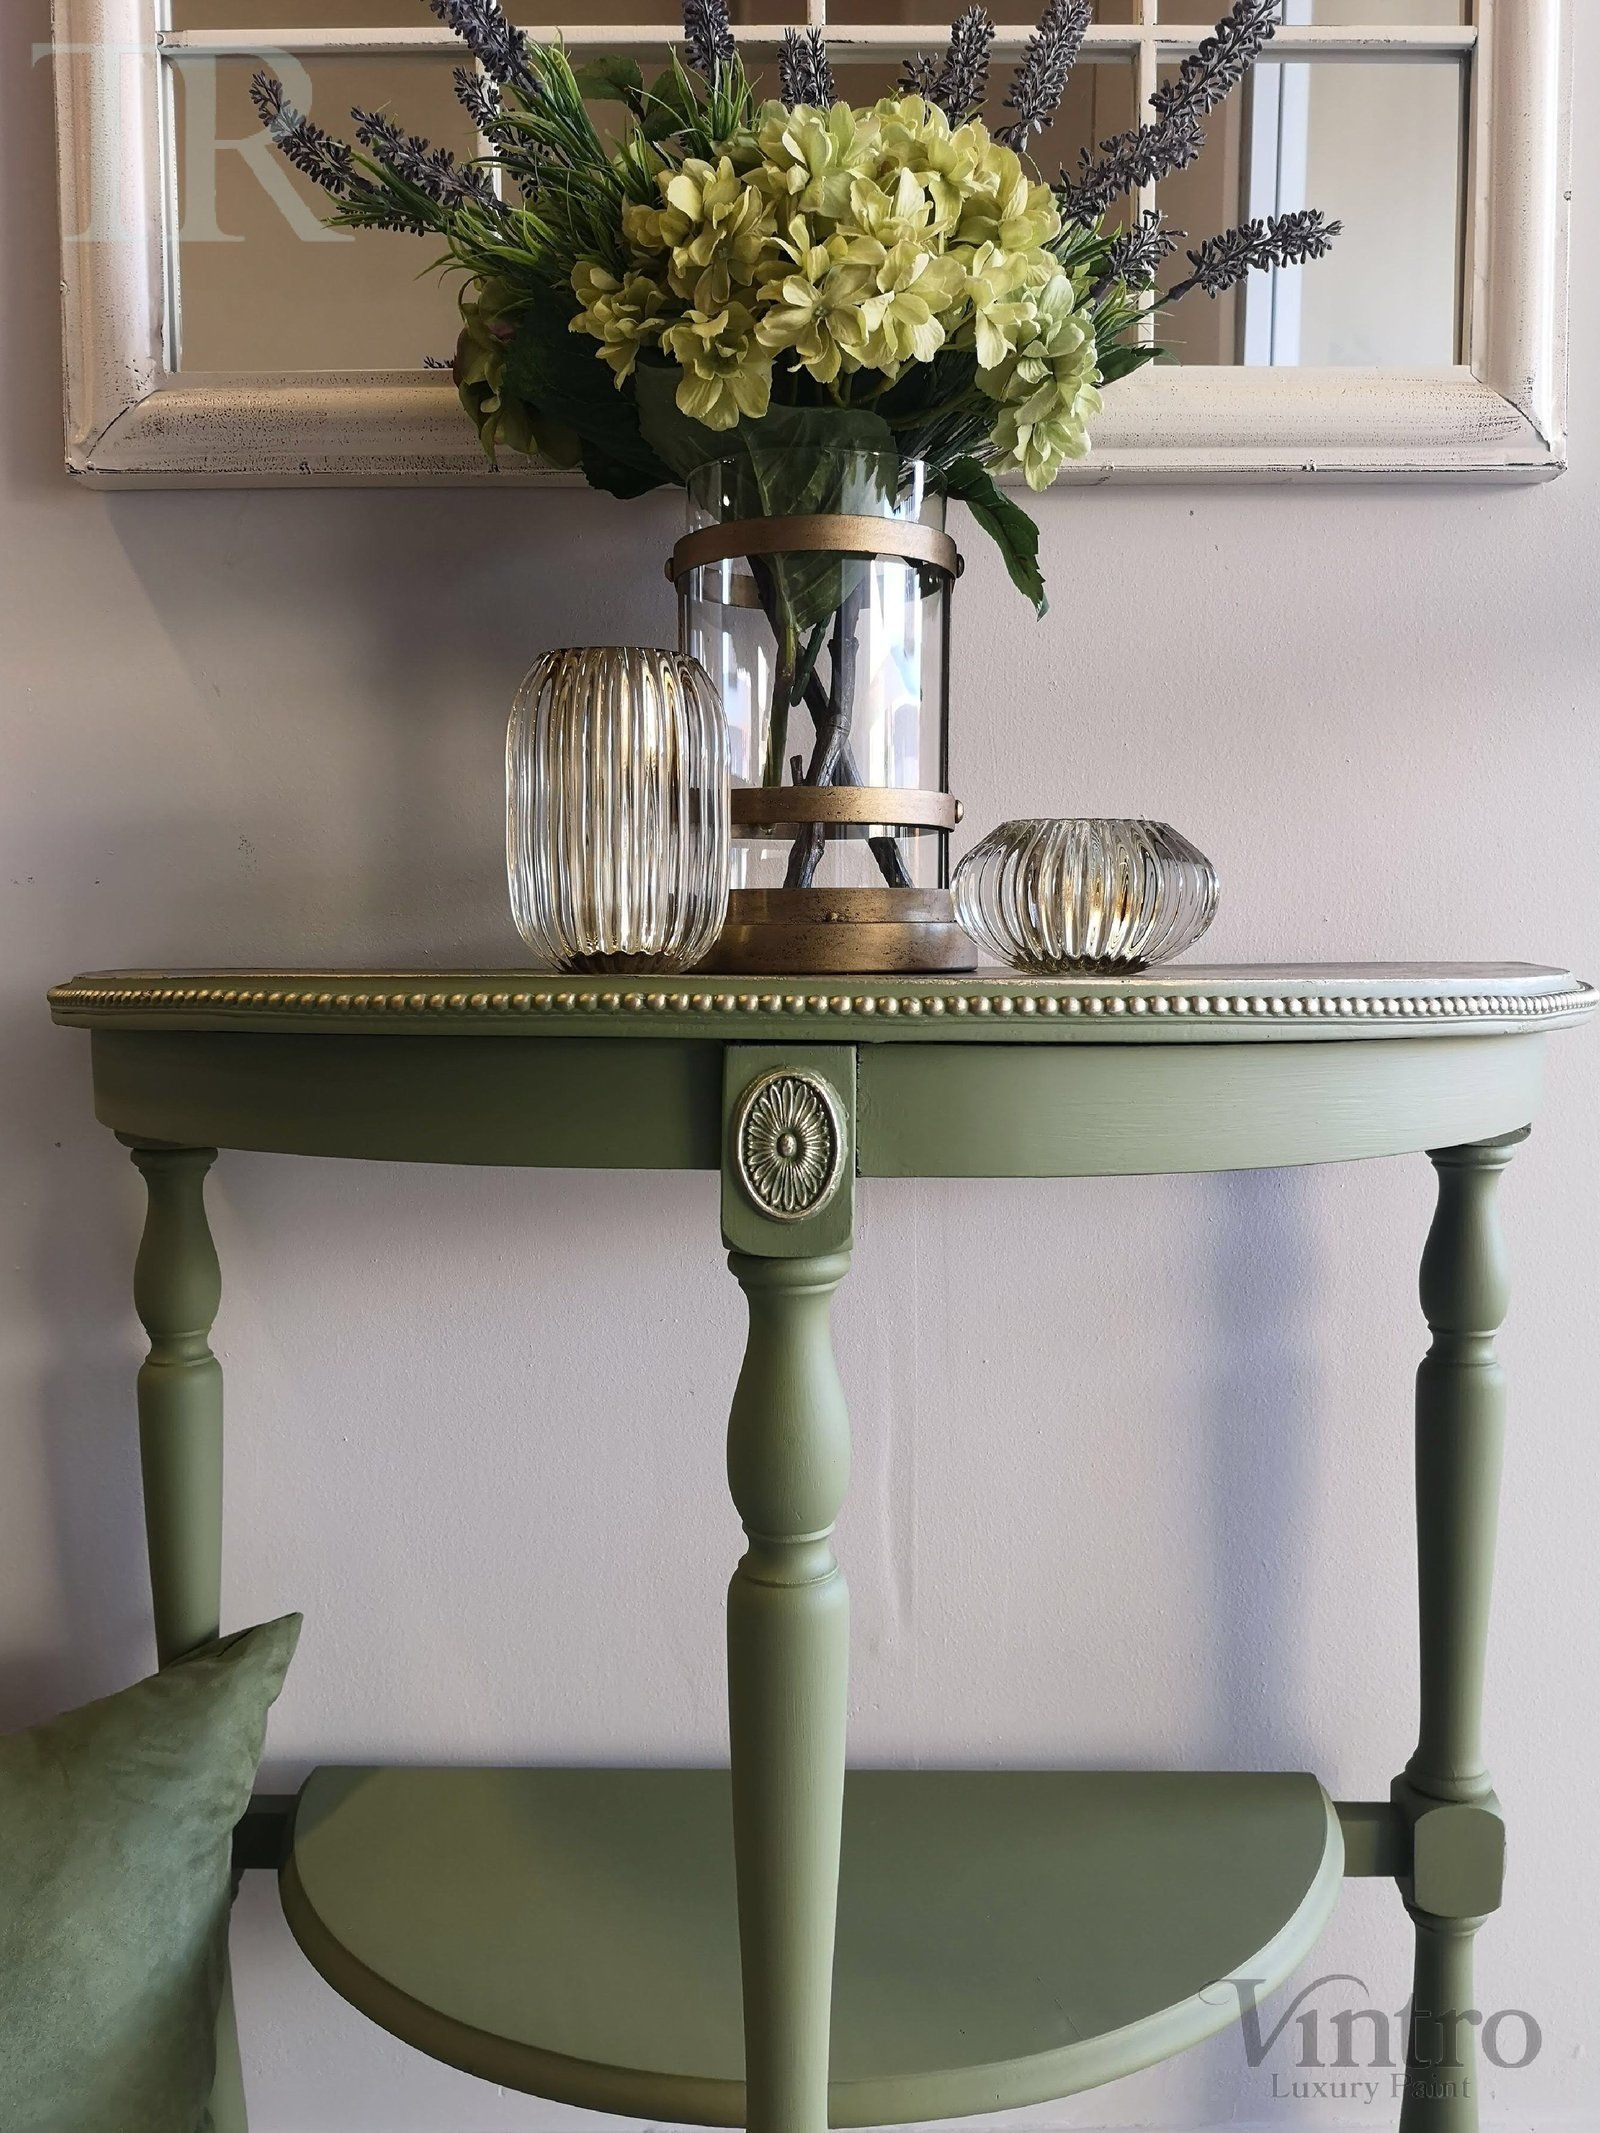 Annalise: Half round table with a metallic top finish